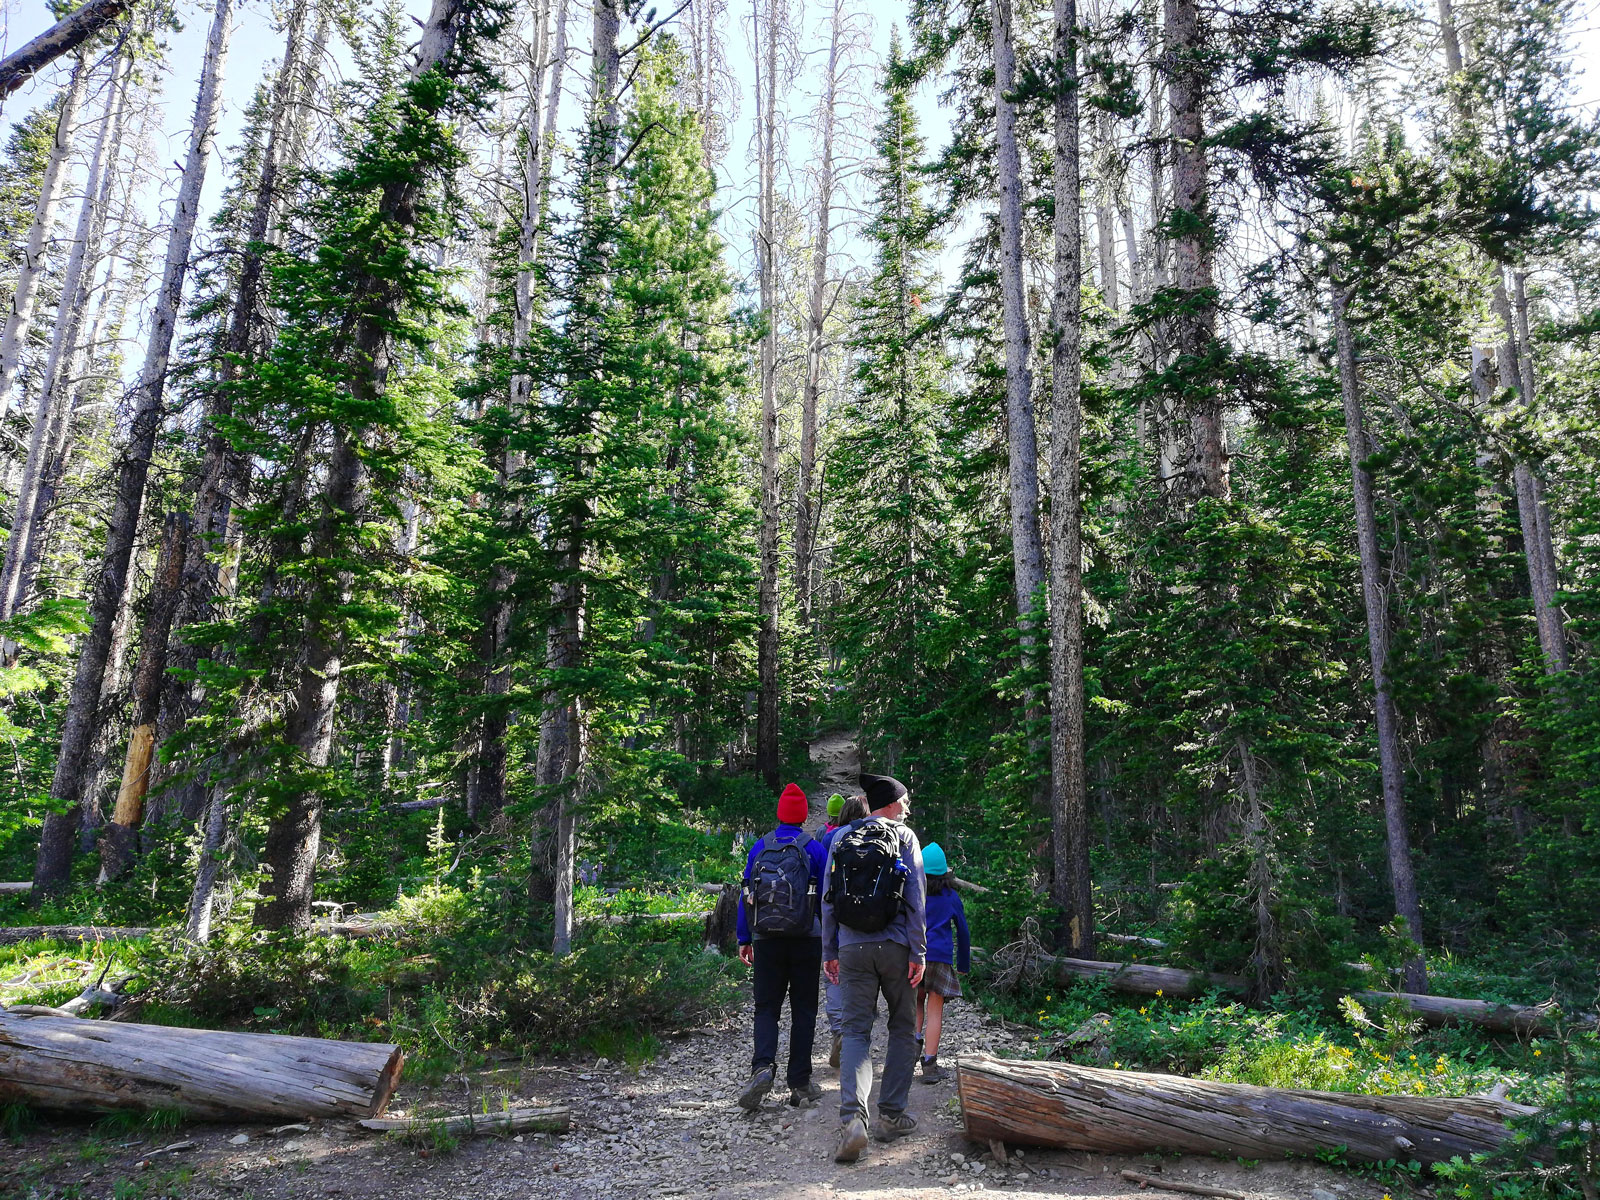 Family at the trailhead of the Avalanche Peak Trail in Yellowstone National Park